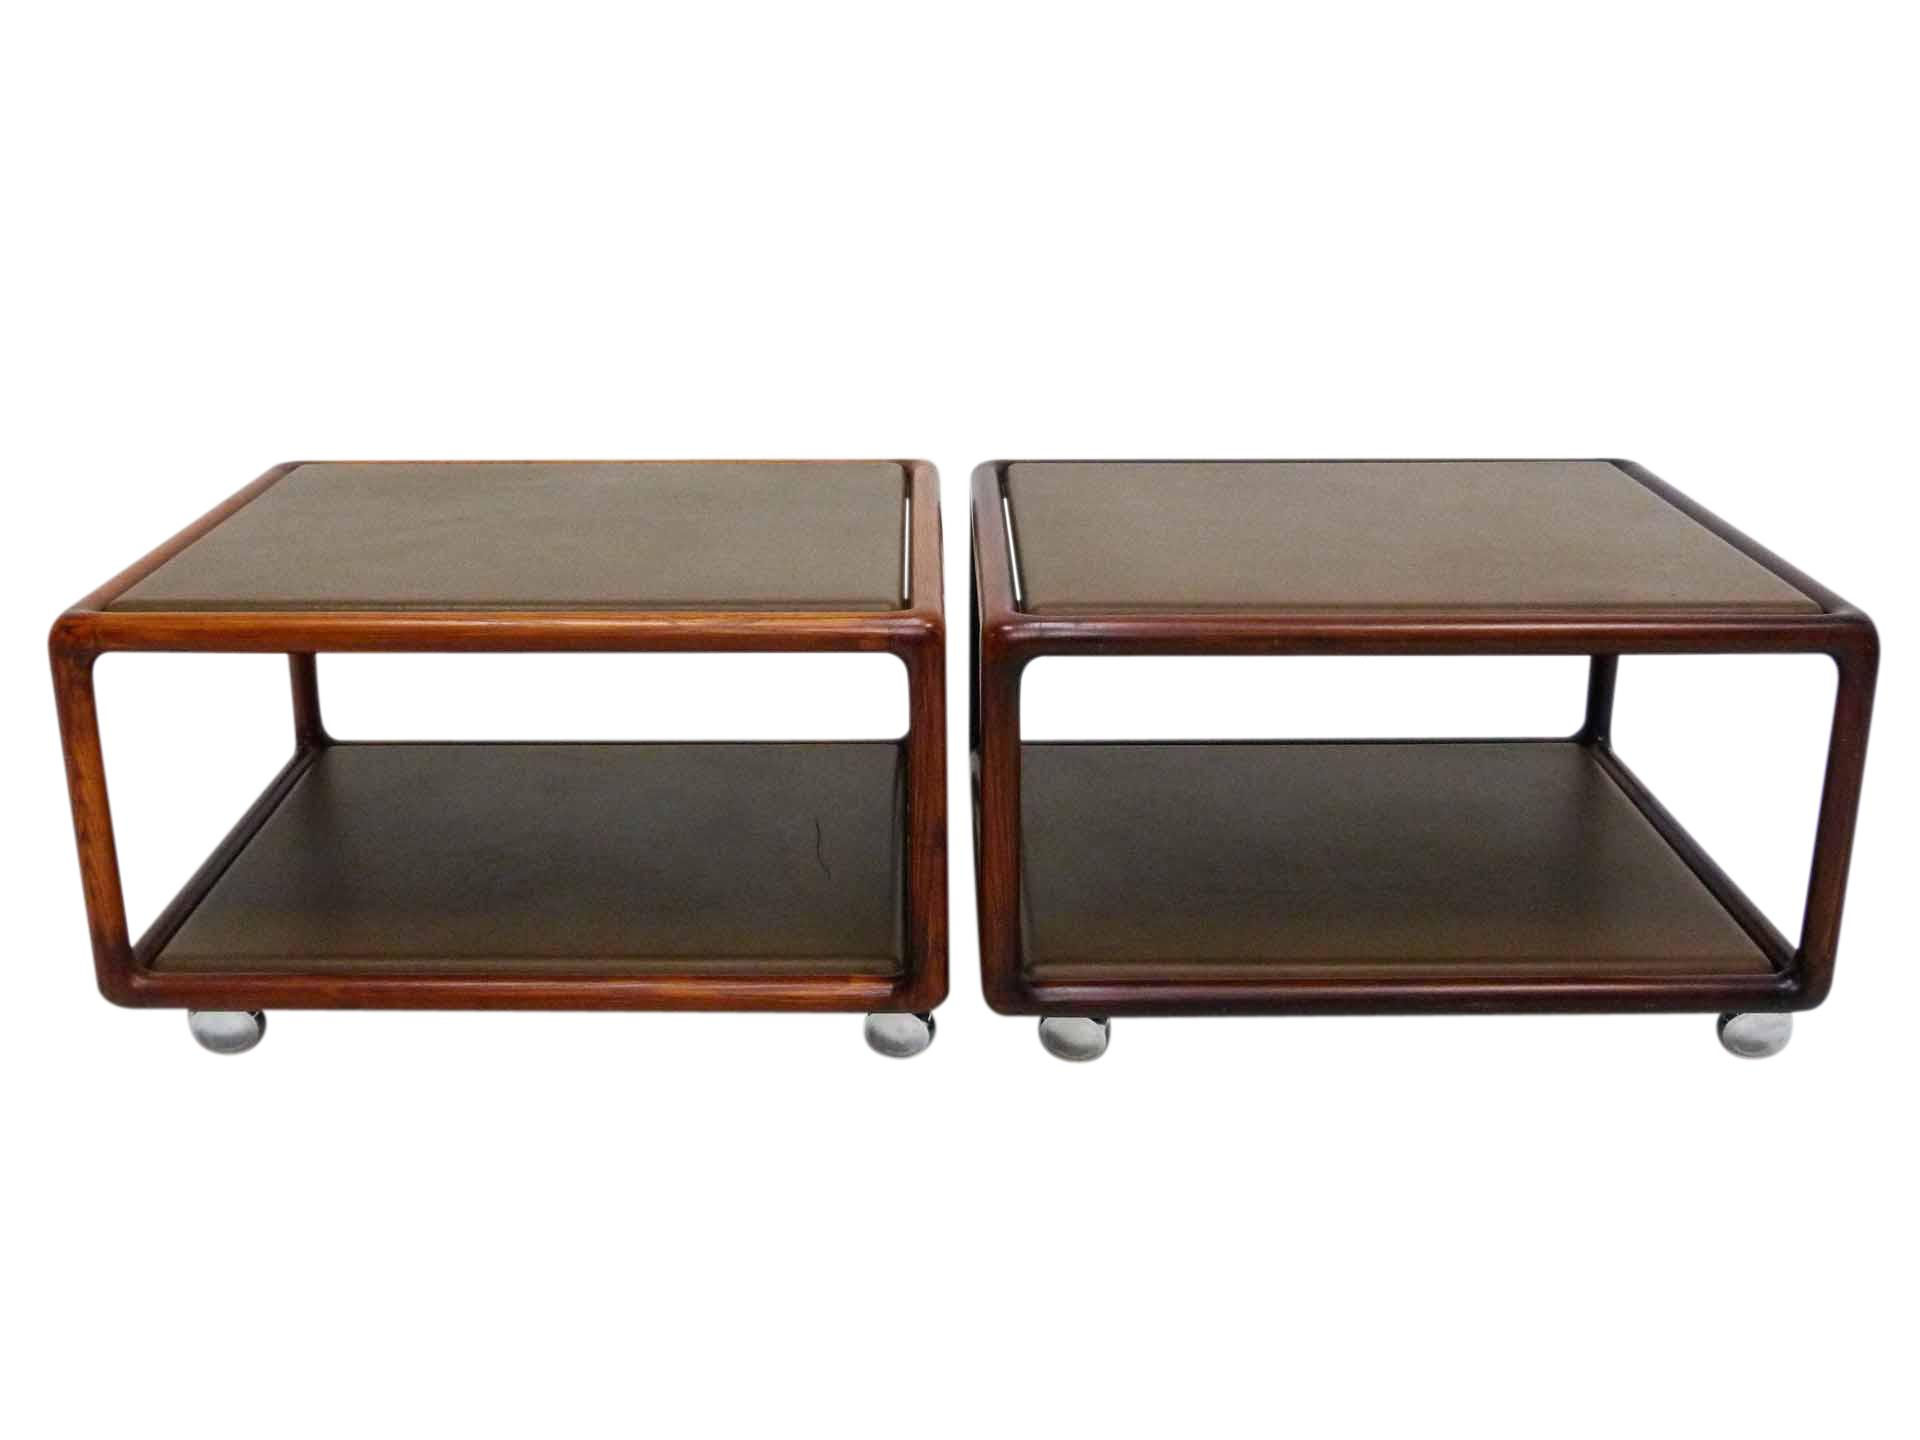 Ward Bennett Leather Tables On Casters A Pair Chairish